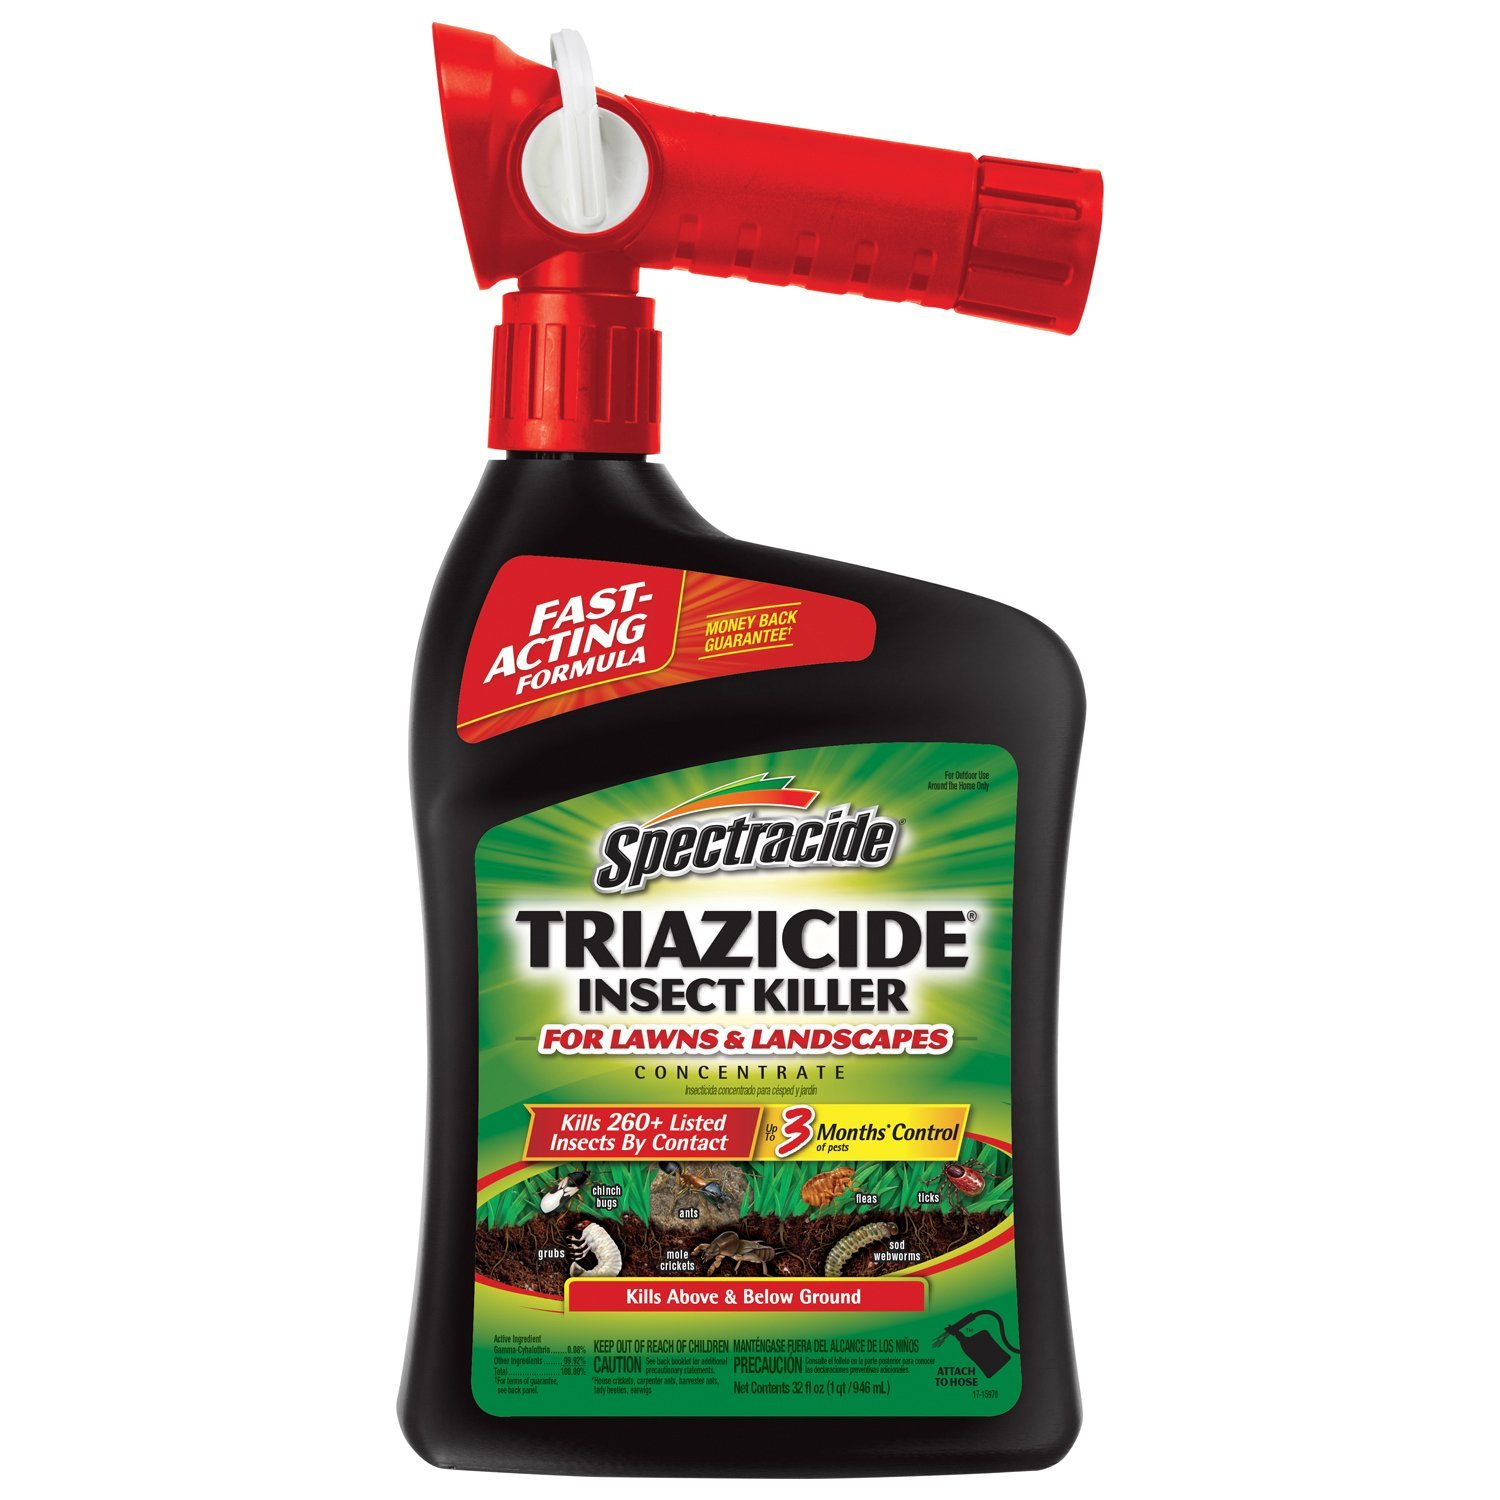 Spectracide Triazicide Insect Killer for Lawns & Landscapes Concentrate, Ready-to-Spray, 32-fl oz